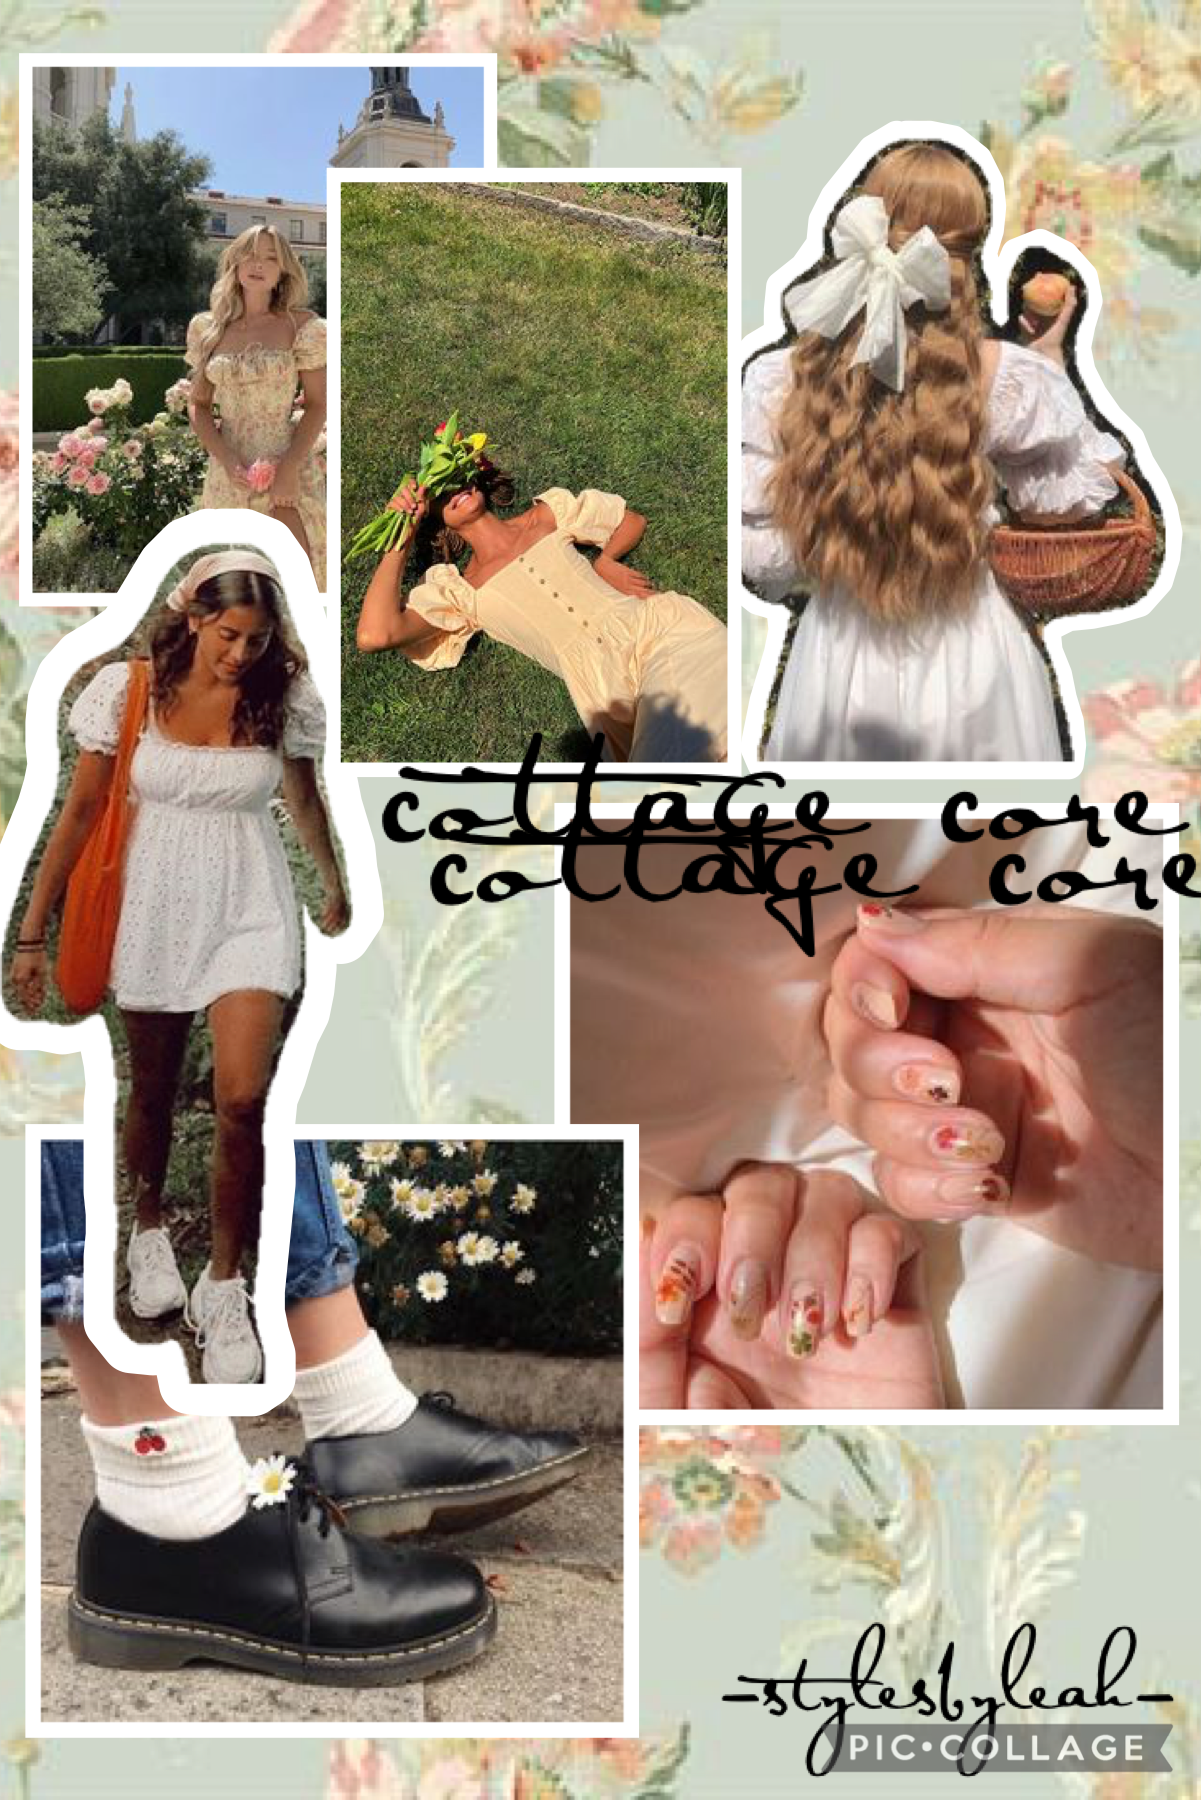 cottage core- requested by teenagetipsforgals